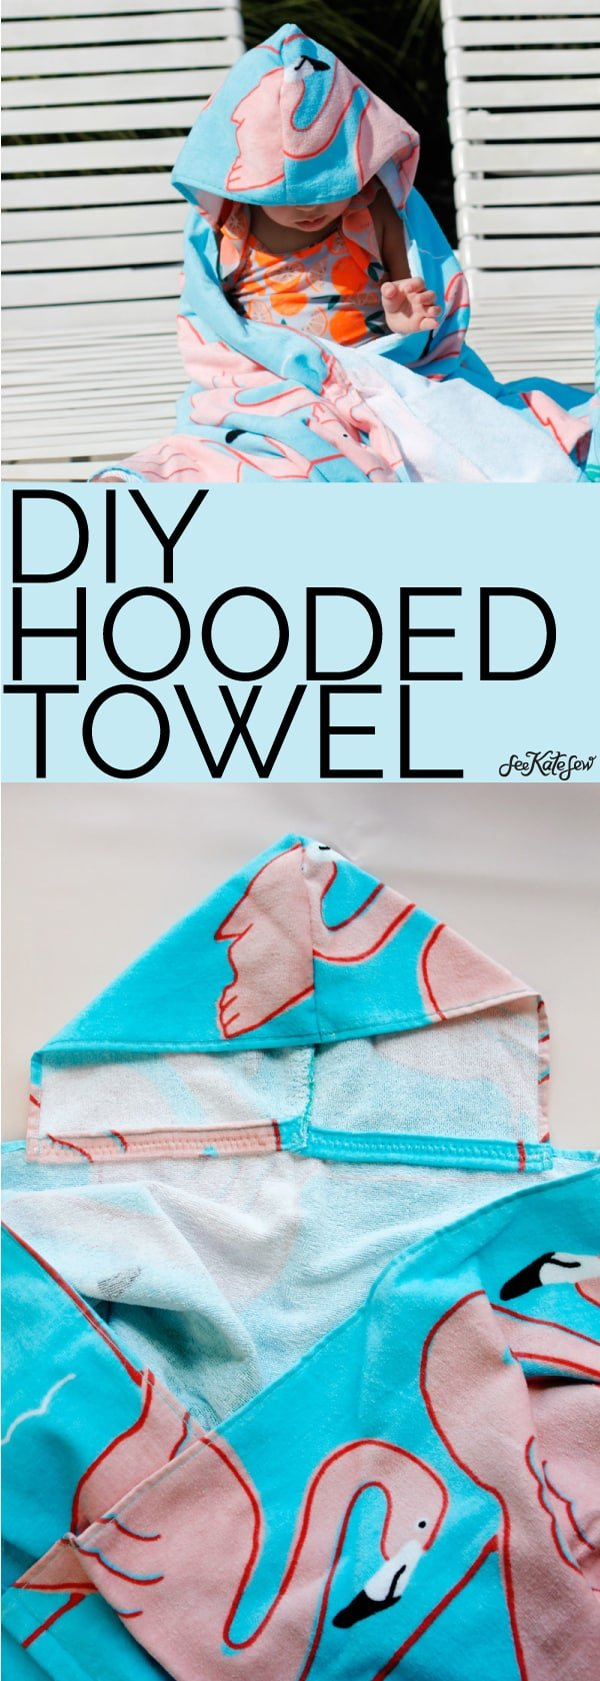 DIY Hooded Towel - FREE PATTERN! | See Kate Sew